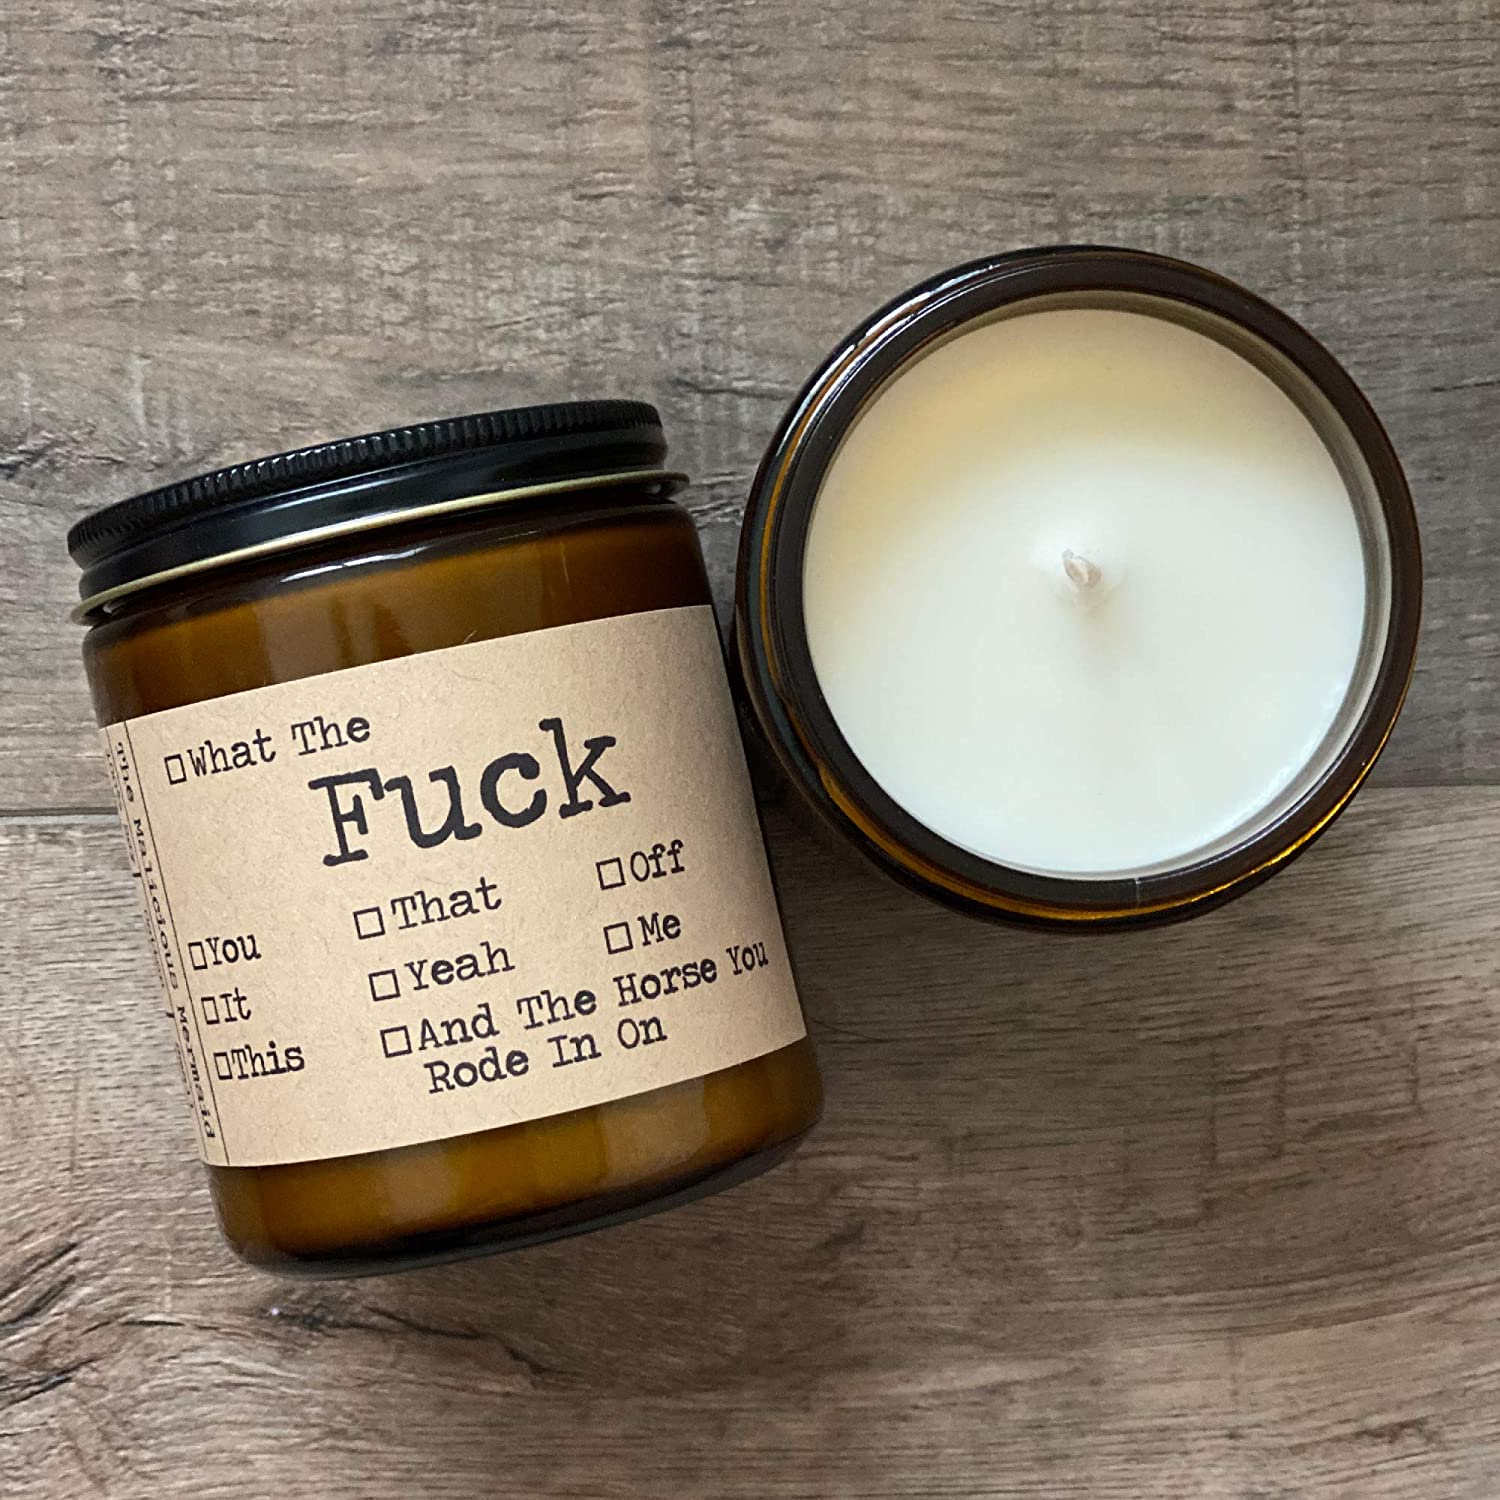 Scented Candles For Women And Men The Malicious Mermaid Made in USA Snarky Candles Amber Jar Candle Premium Soy Wax Candle All The Fucks